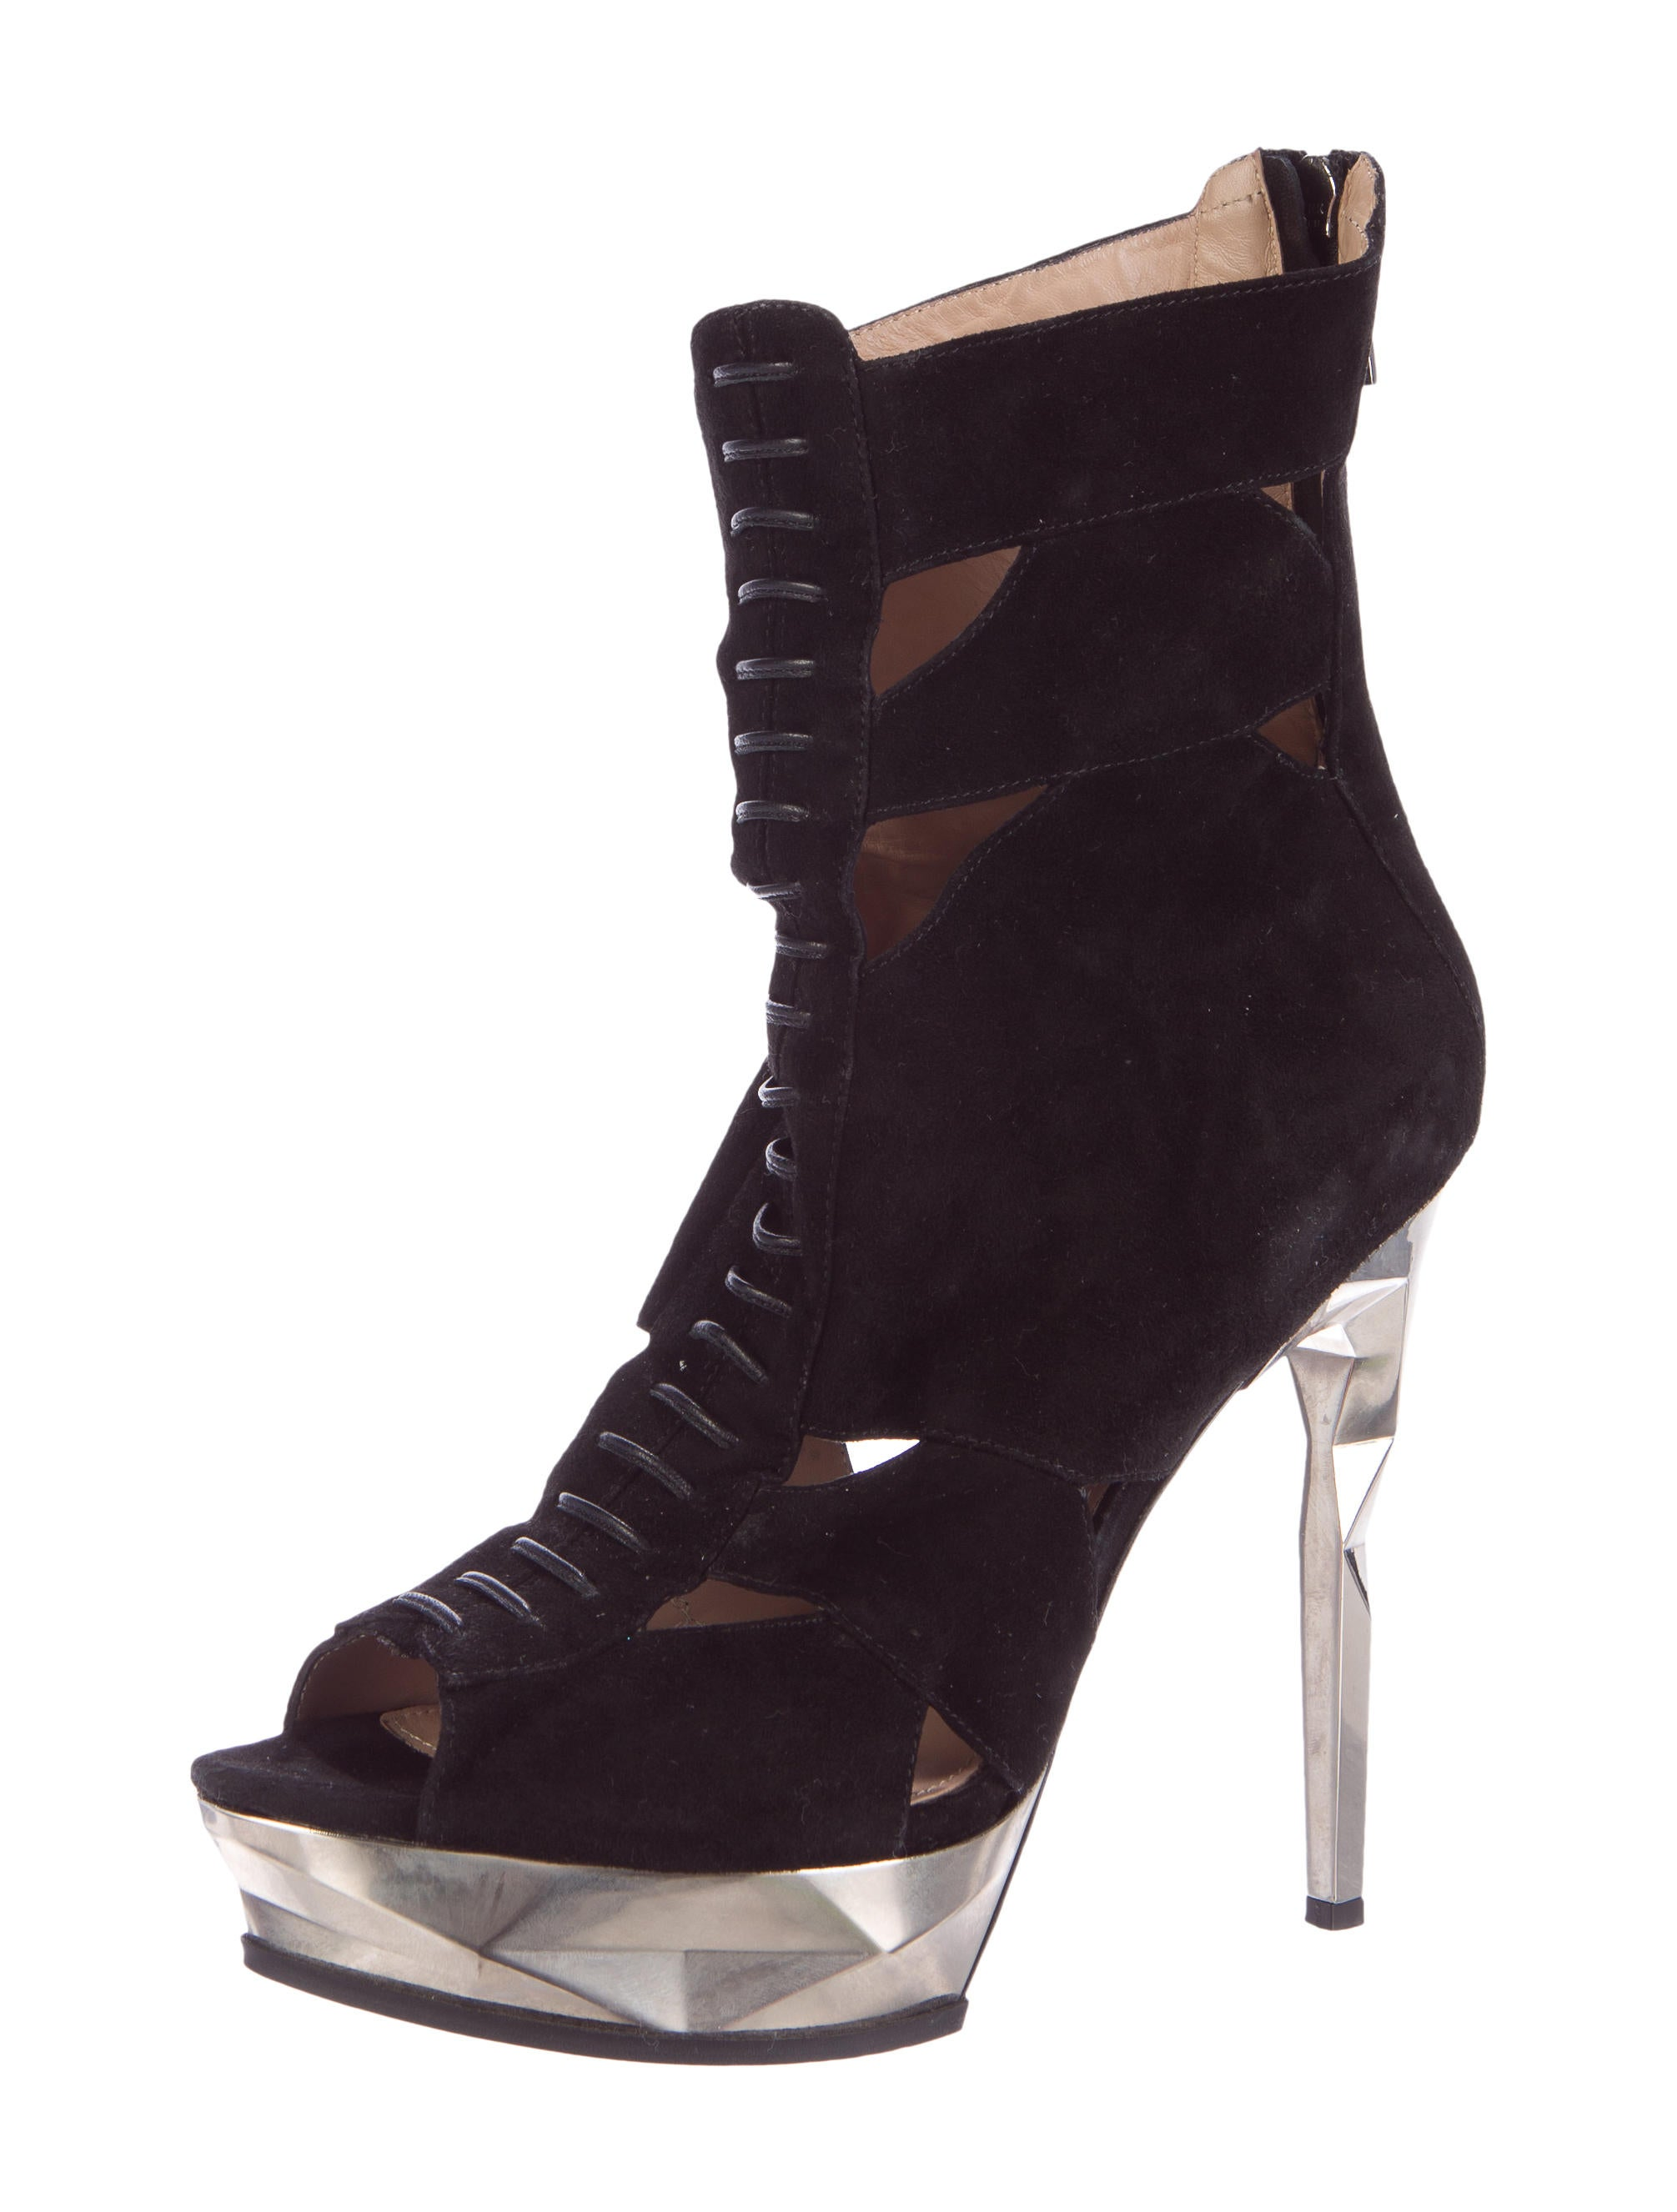 Find great deals on eBay for high heel lace up platform ankle boots. Shop with confidence.